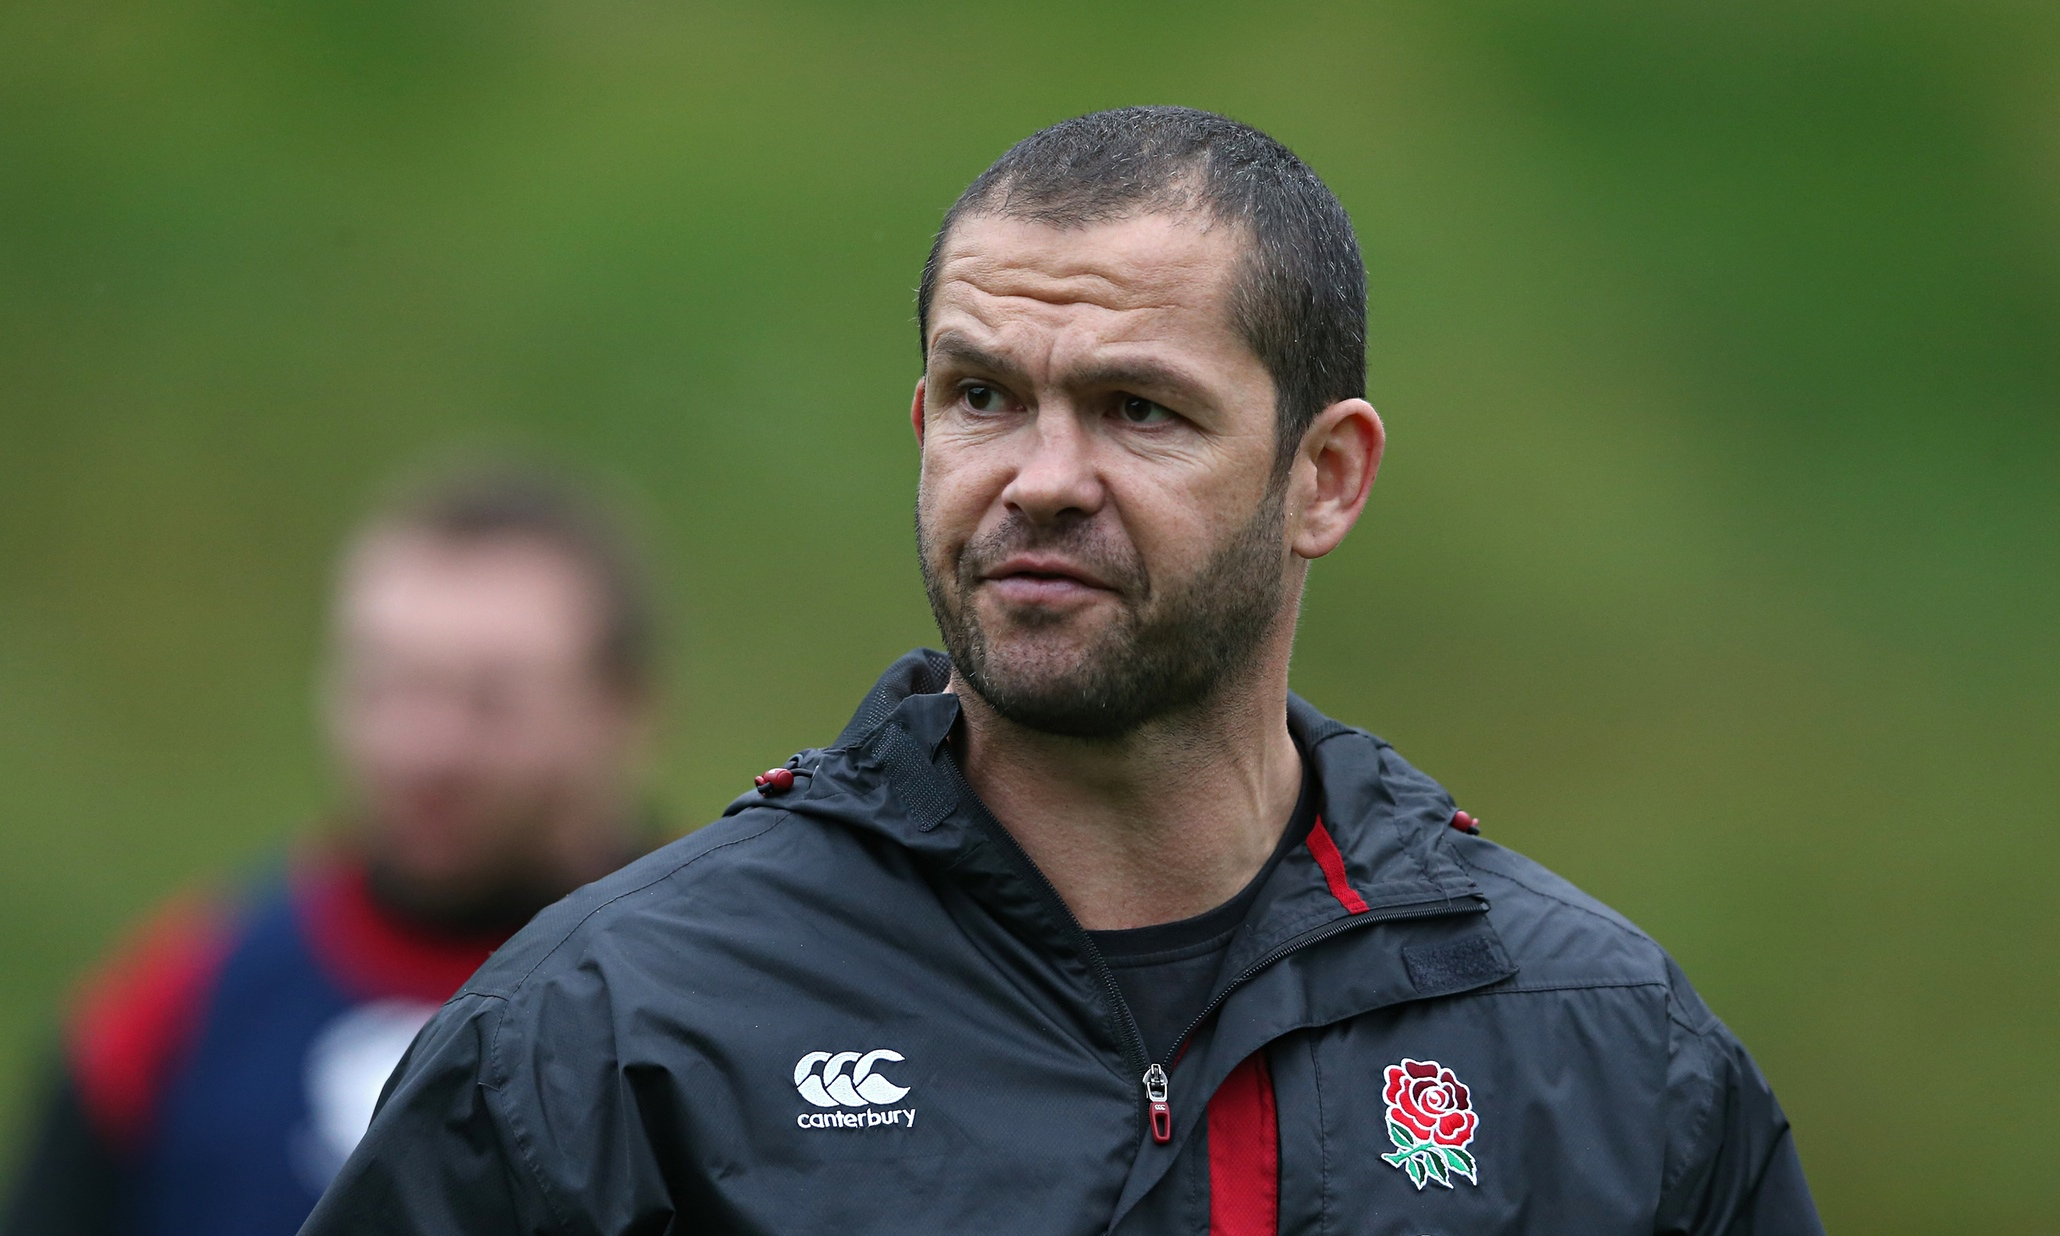 Andy Farrell Expects England To Vary Midfield Style At Rugby World Cup Rugby News Newslocker